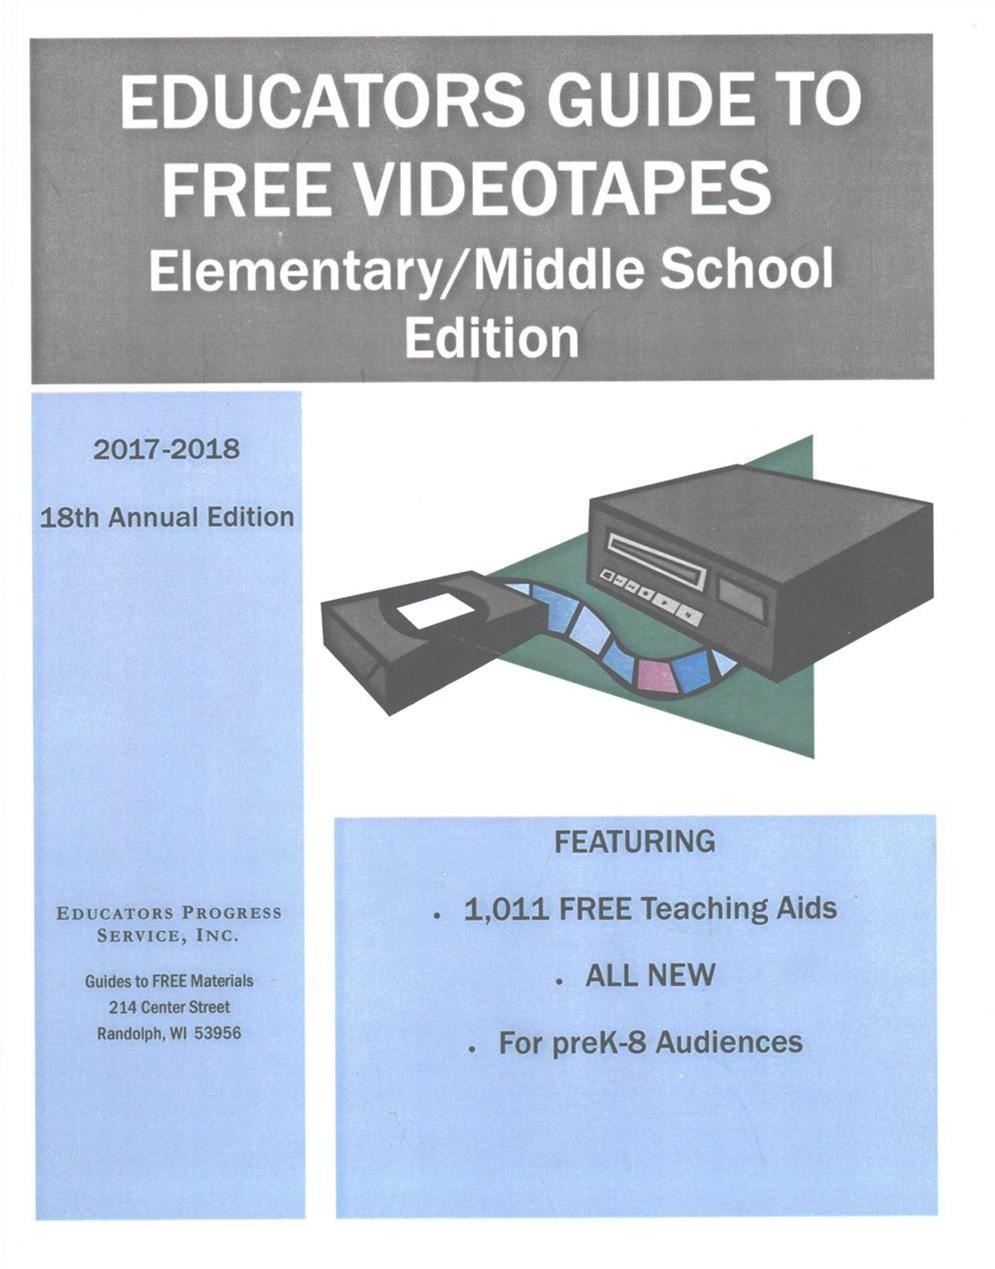 Educators Guide to Free Videos 2017-2018